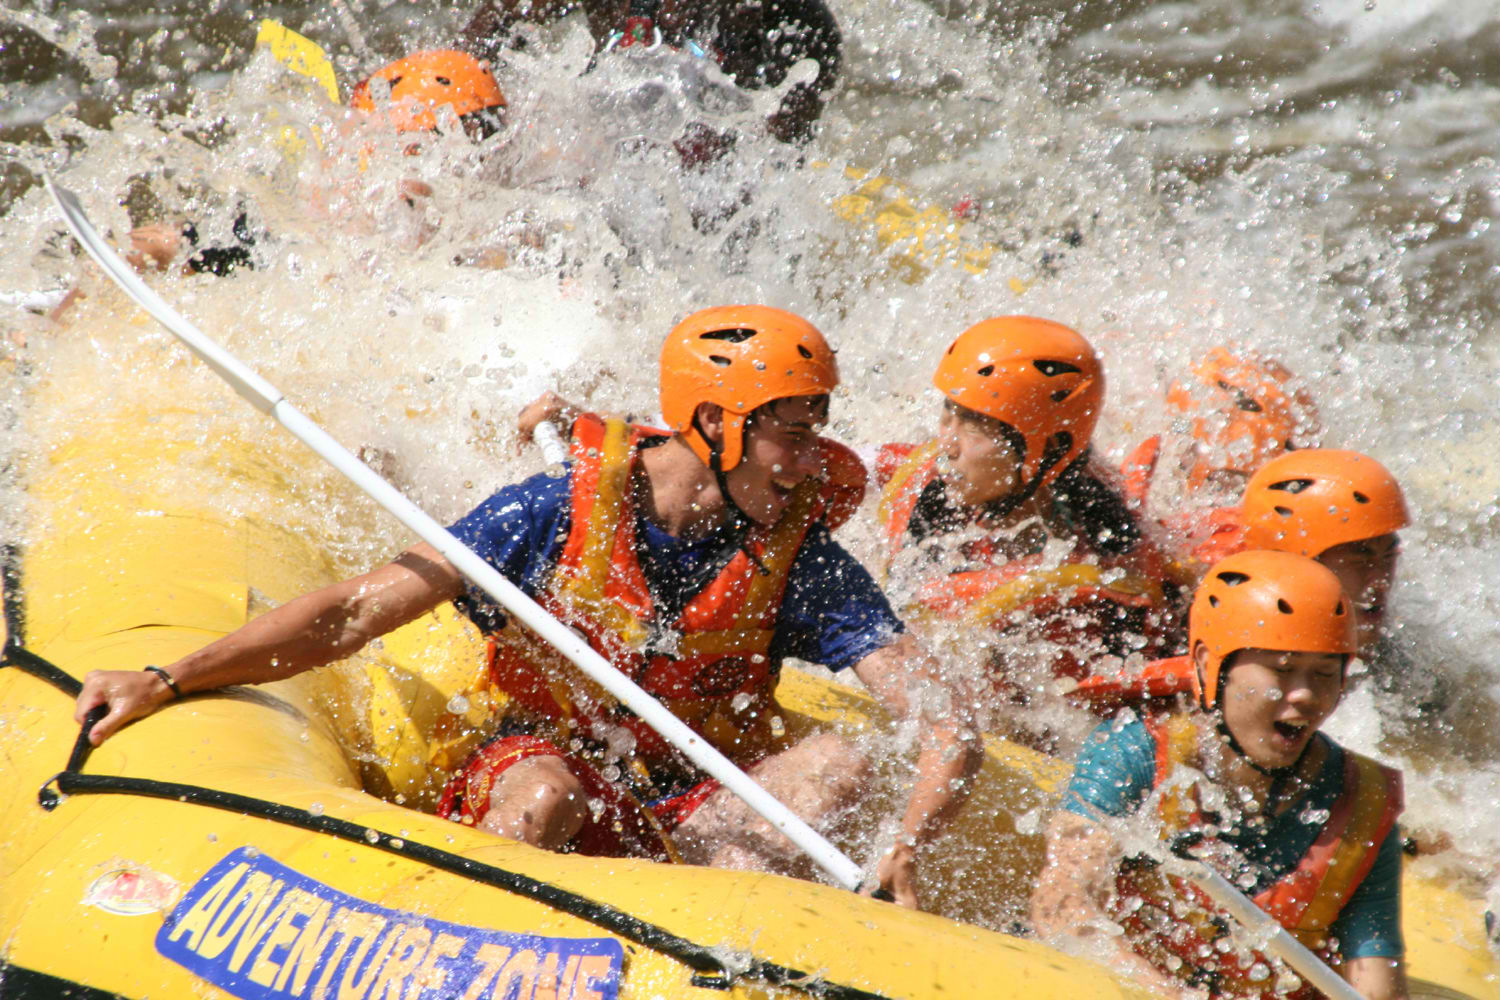 Adventure Zone Victoria Falls will start rafting again27th May 2012. Check out afrikanblues.com blog for more details.